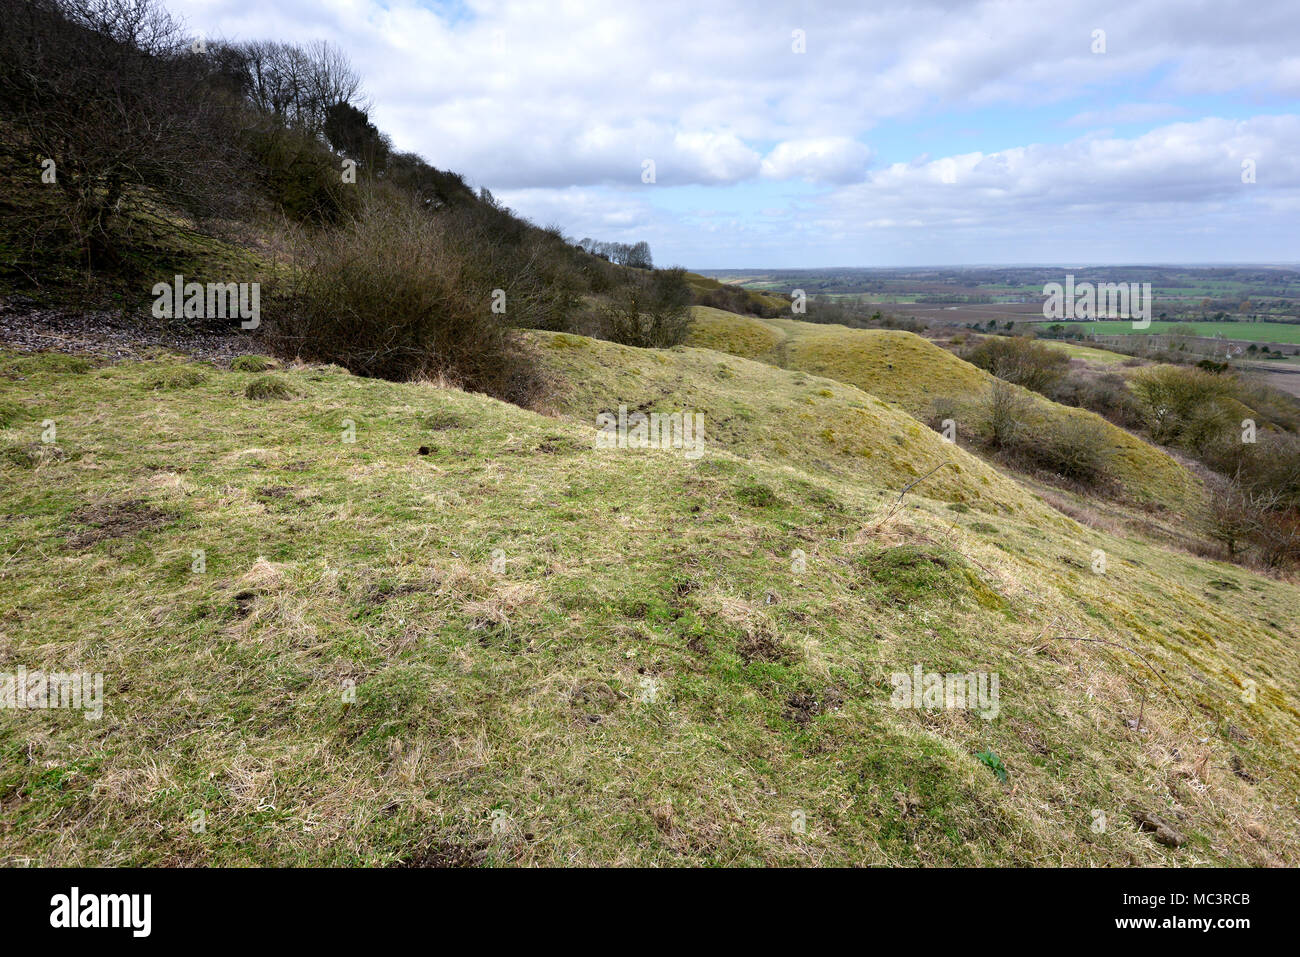 Old chalk pits in Malling Down nature reserve in the South Downs National Park, Lewes, East Sussex, UK - Stock Image